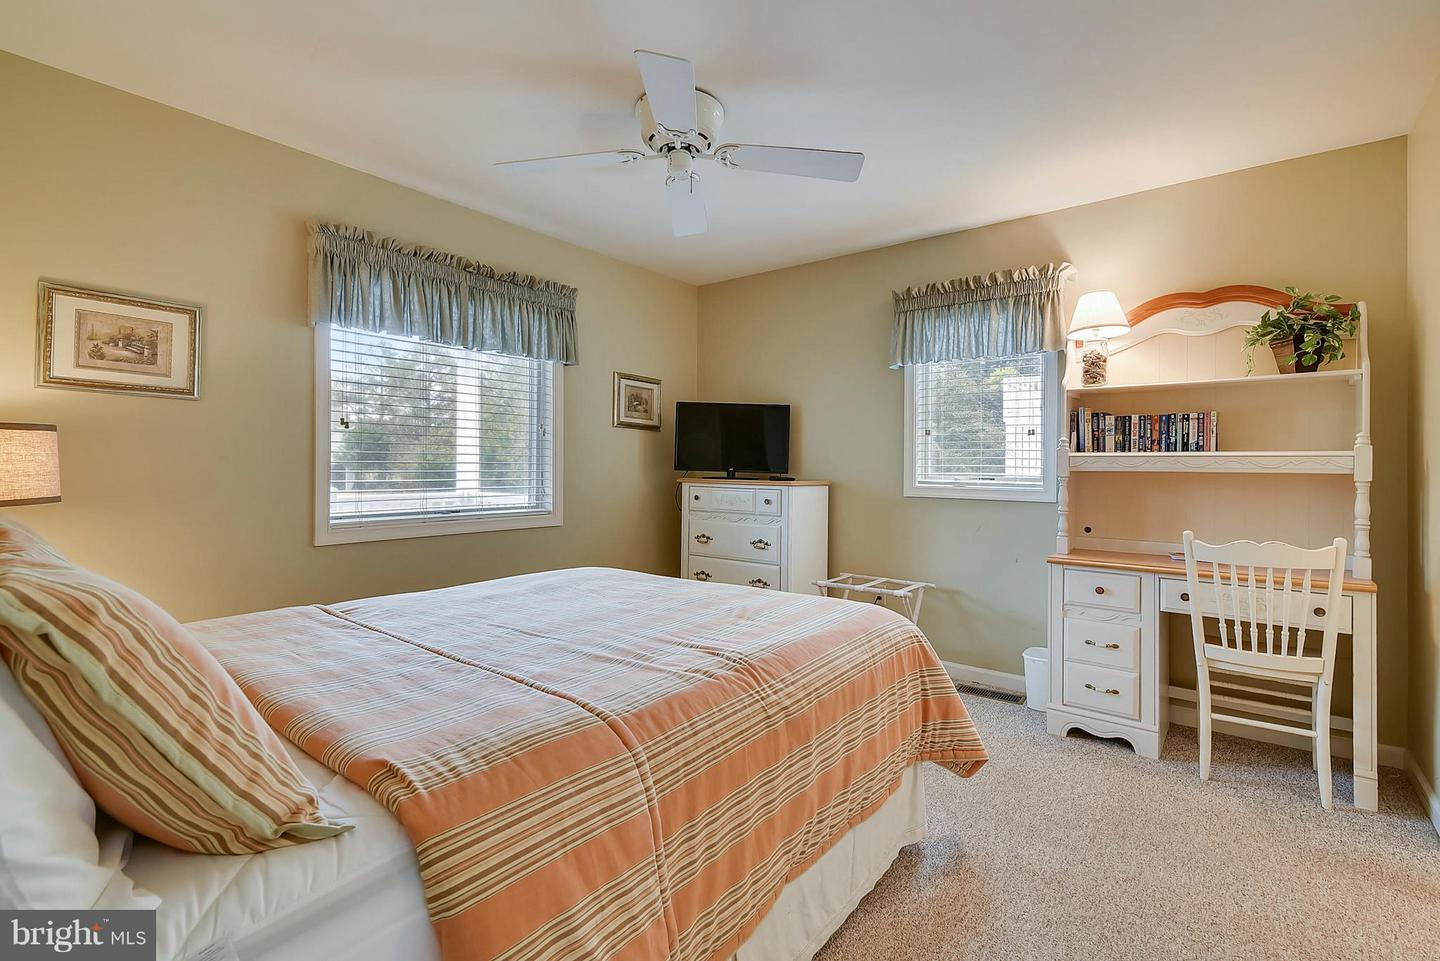 1002344128-300986980837-2018-11-07-14-16-58 39634 Seatrout Cir | North Bethany, DE Real Estate For Sale | MLS# 1002344128  - 1st Choice Properties